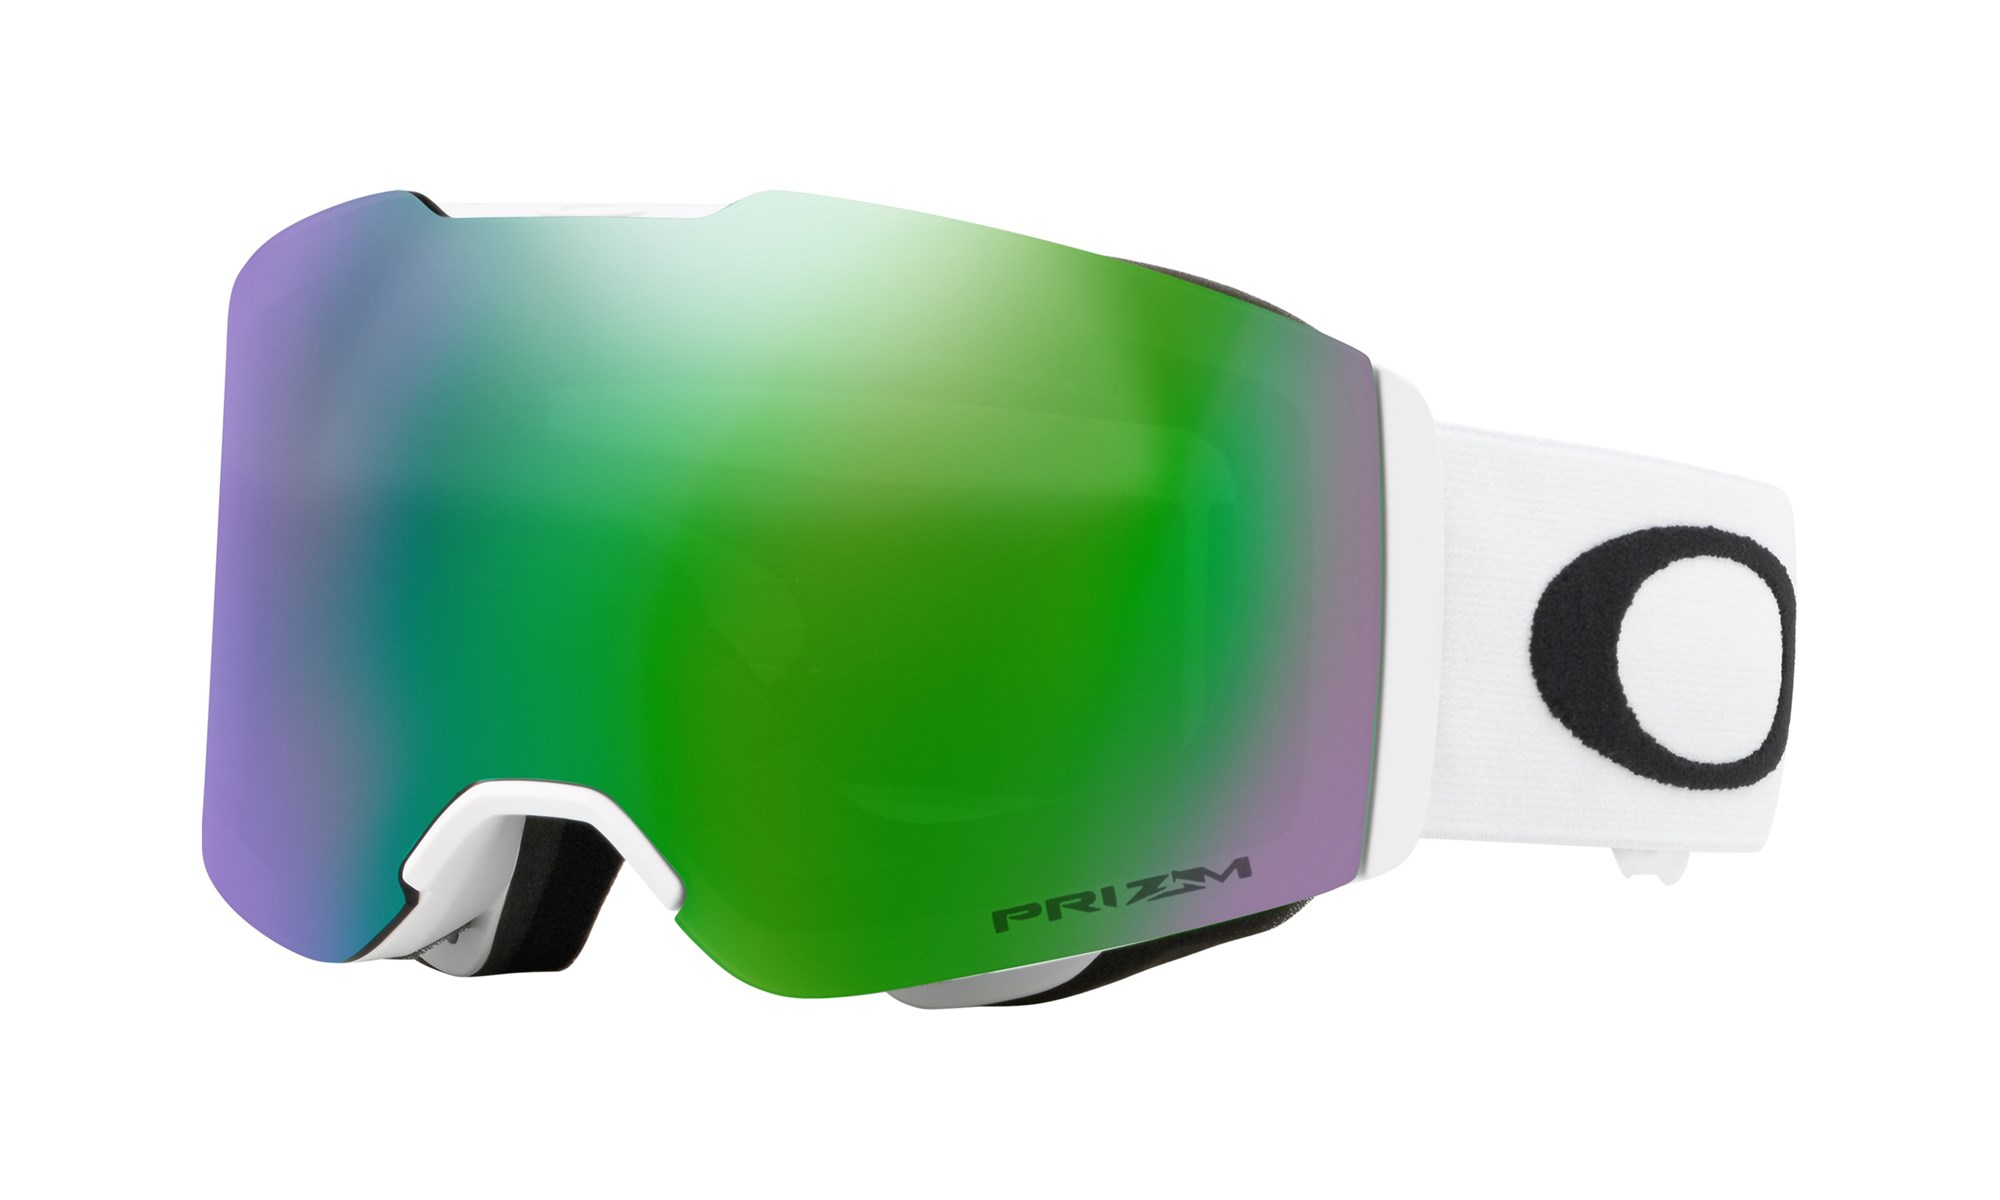 d485d64e3a Oakley Fall Line Goggle Matte White Prizm Jade. 0 (Be the first to add a  review!)